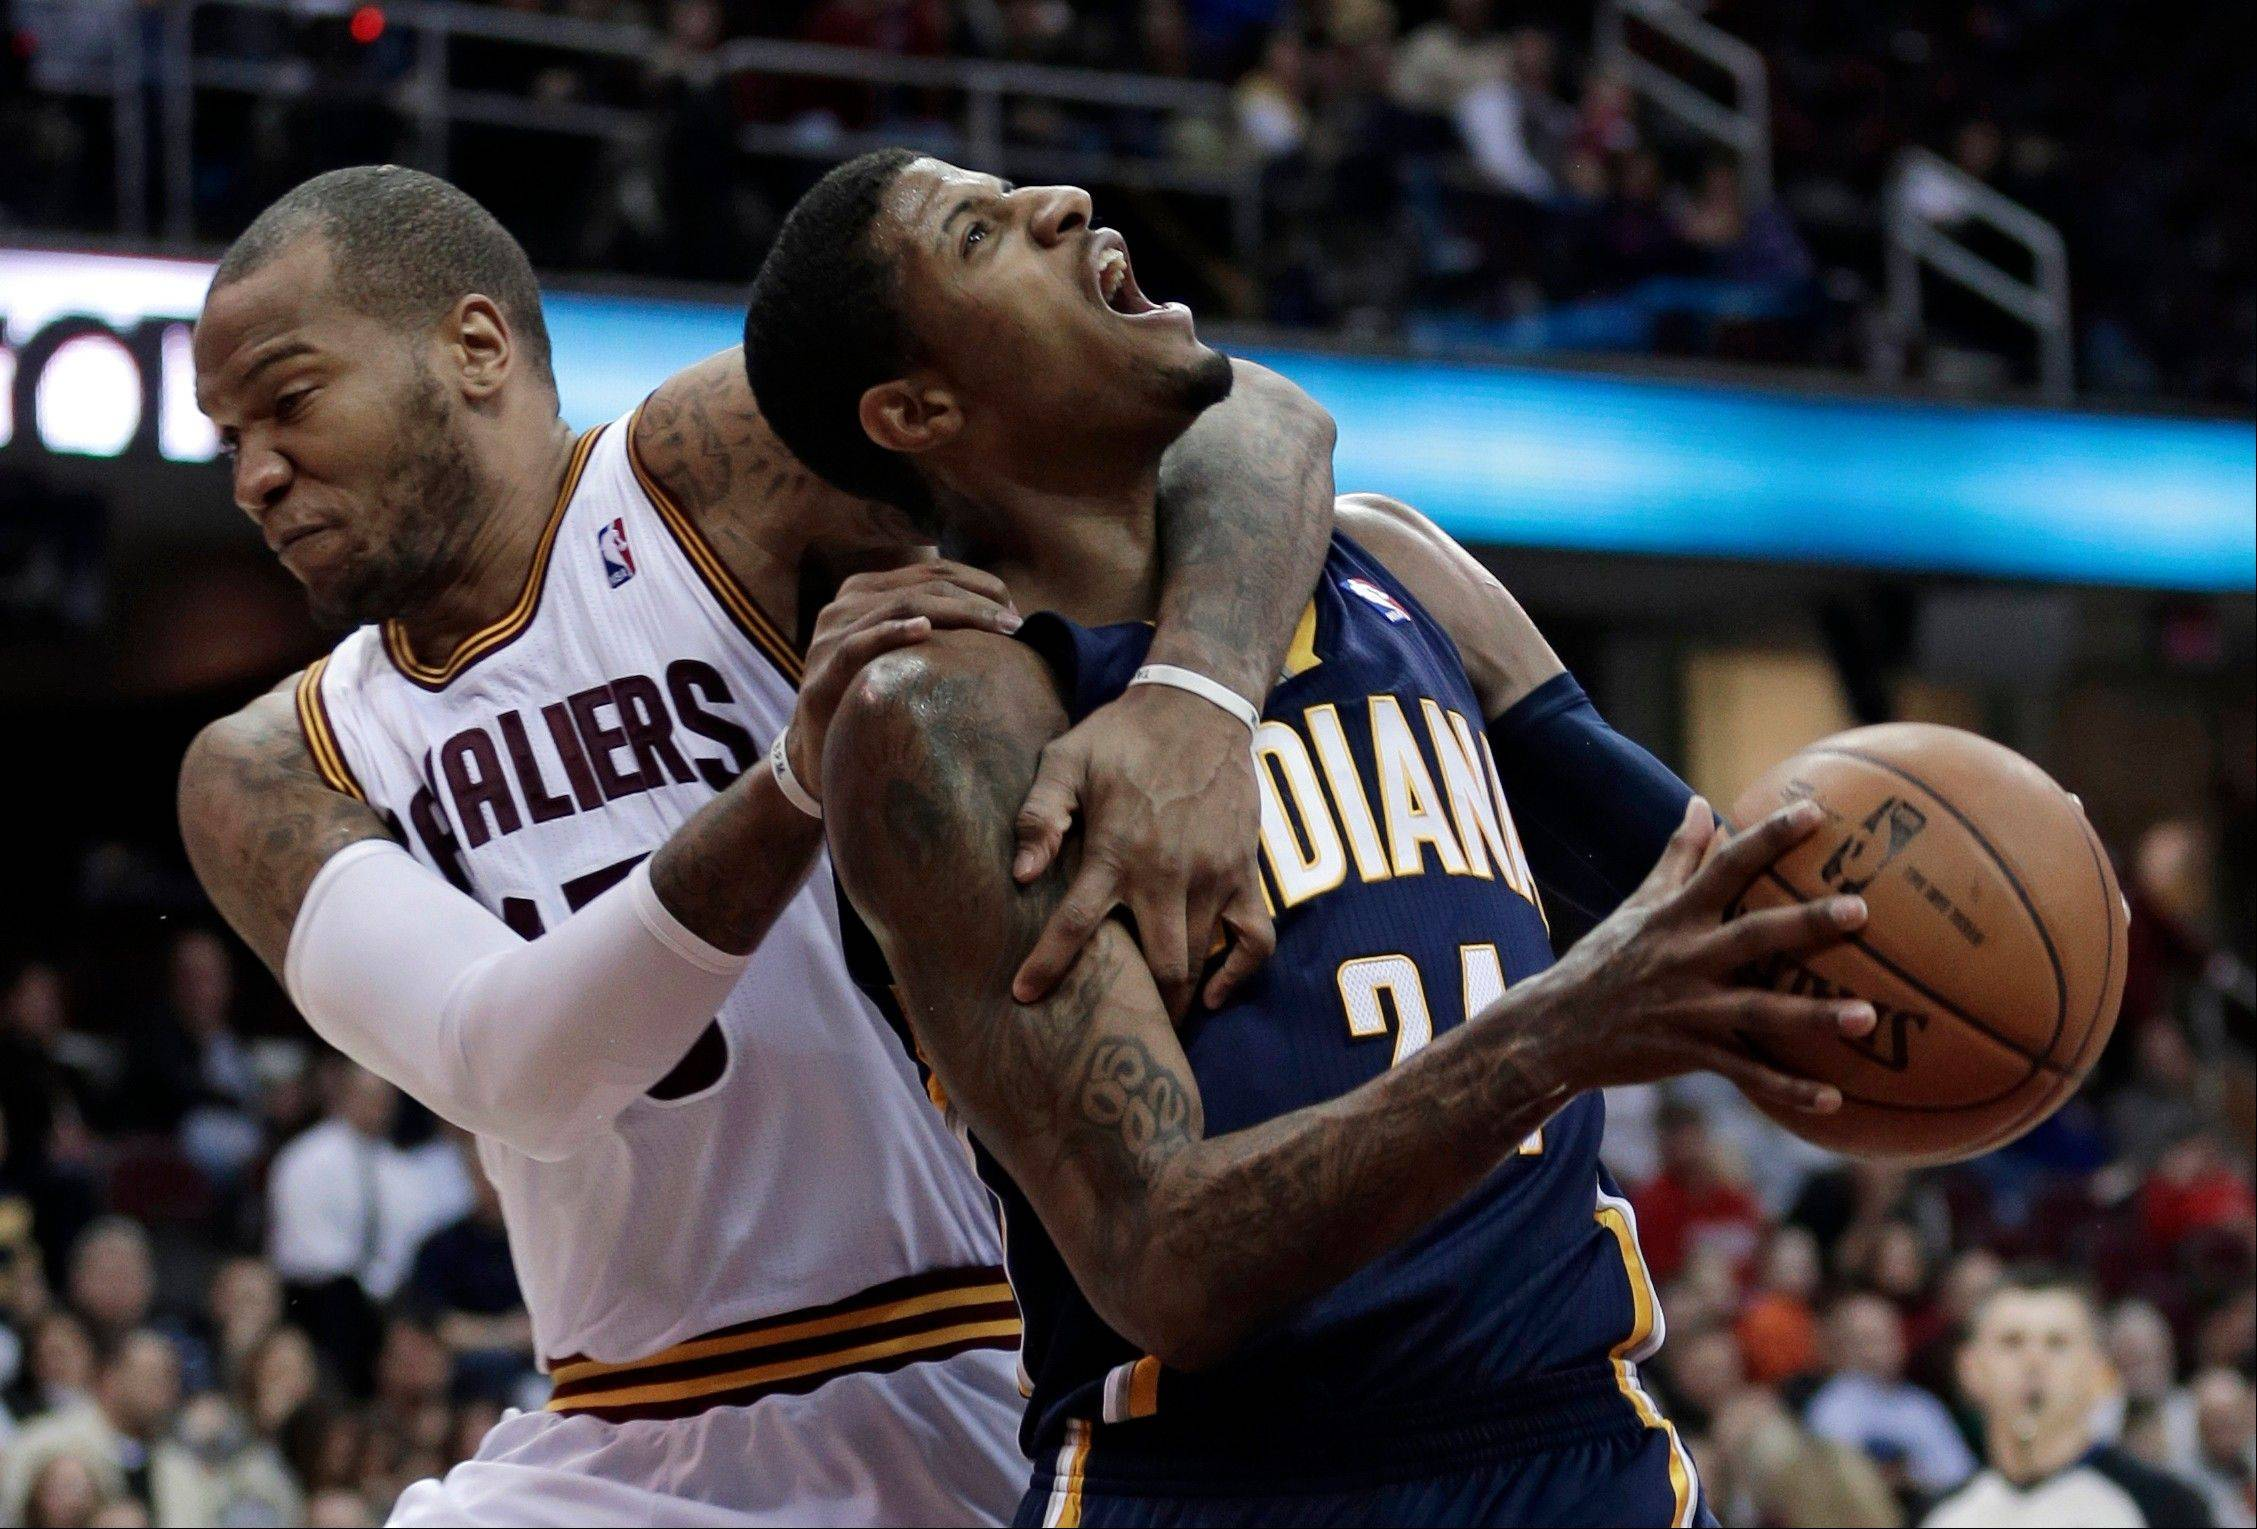 Cleveland Cavalier's Marreese Speights, left, fouls Indiana Pacers' Paul George during the third quarter of an NBA basketball game Monday in Cleveland. Speights was ejected for a flagrant foul. The Pacers won 111-90.